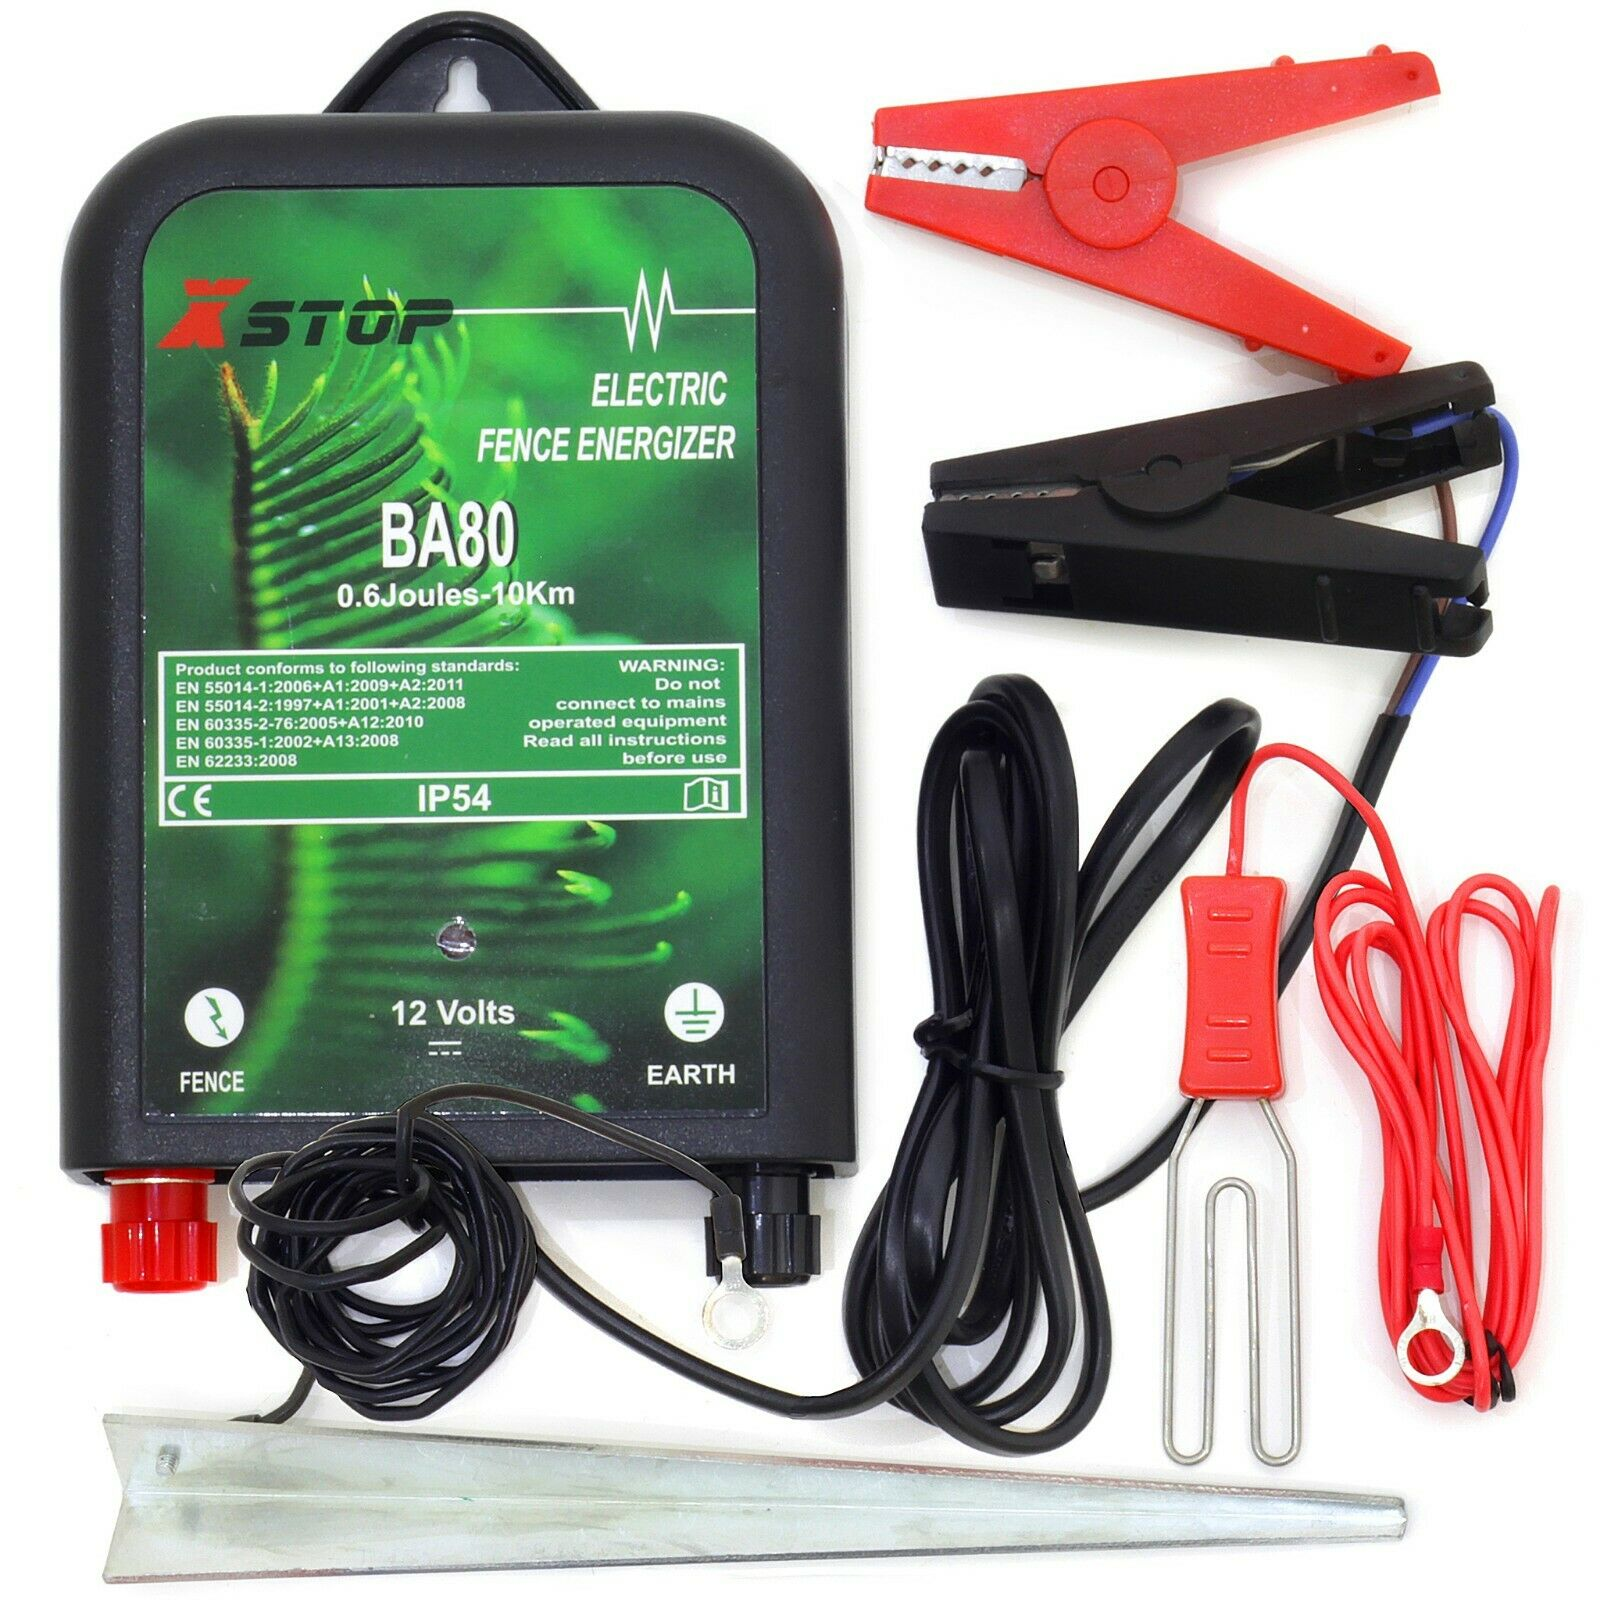 BA80 ELECTRIC FENCE ENERGISER UNIT 10km 12v BATTERY POWERED FENCING 0.6J CE RoHS